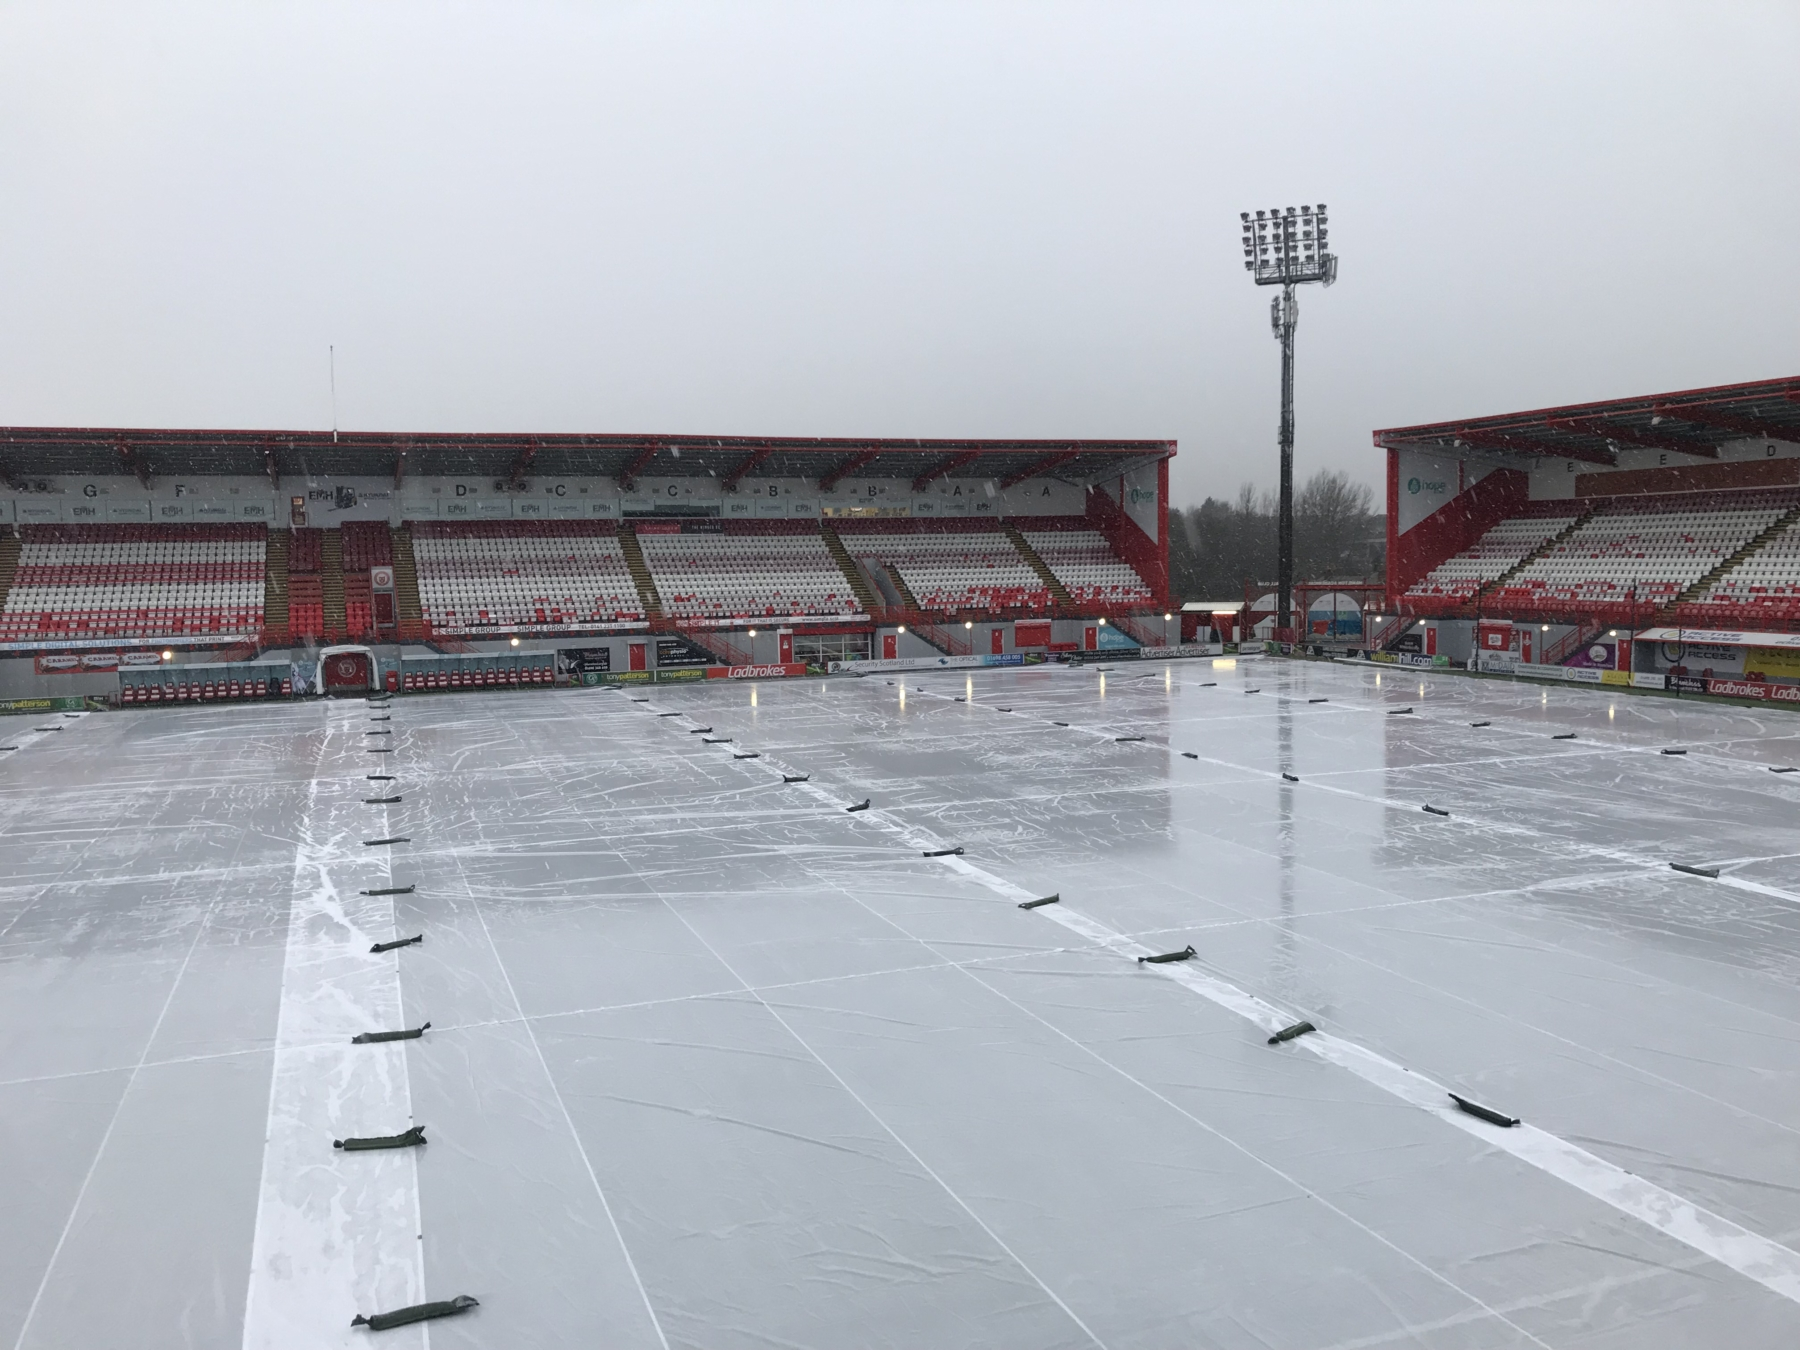 Hamilton FC protected from inclement weather by Matchsaver covers